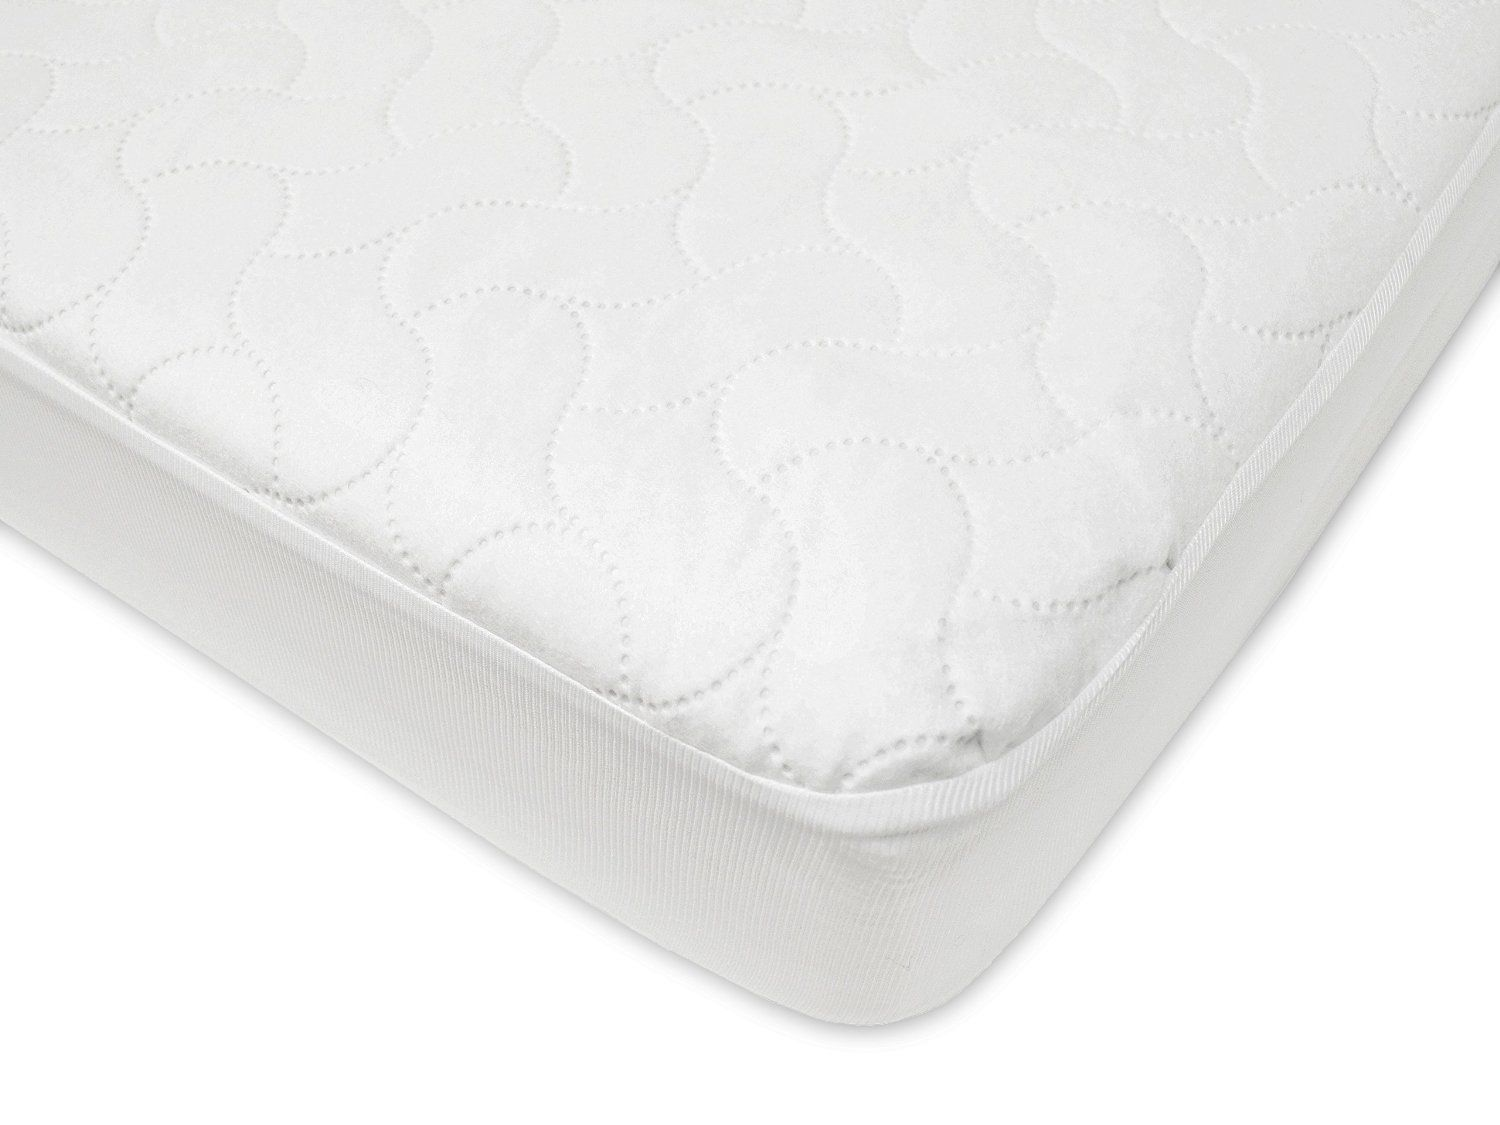 waterproof fitted crib and toddler protective mattress pad cover